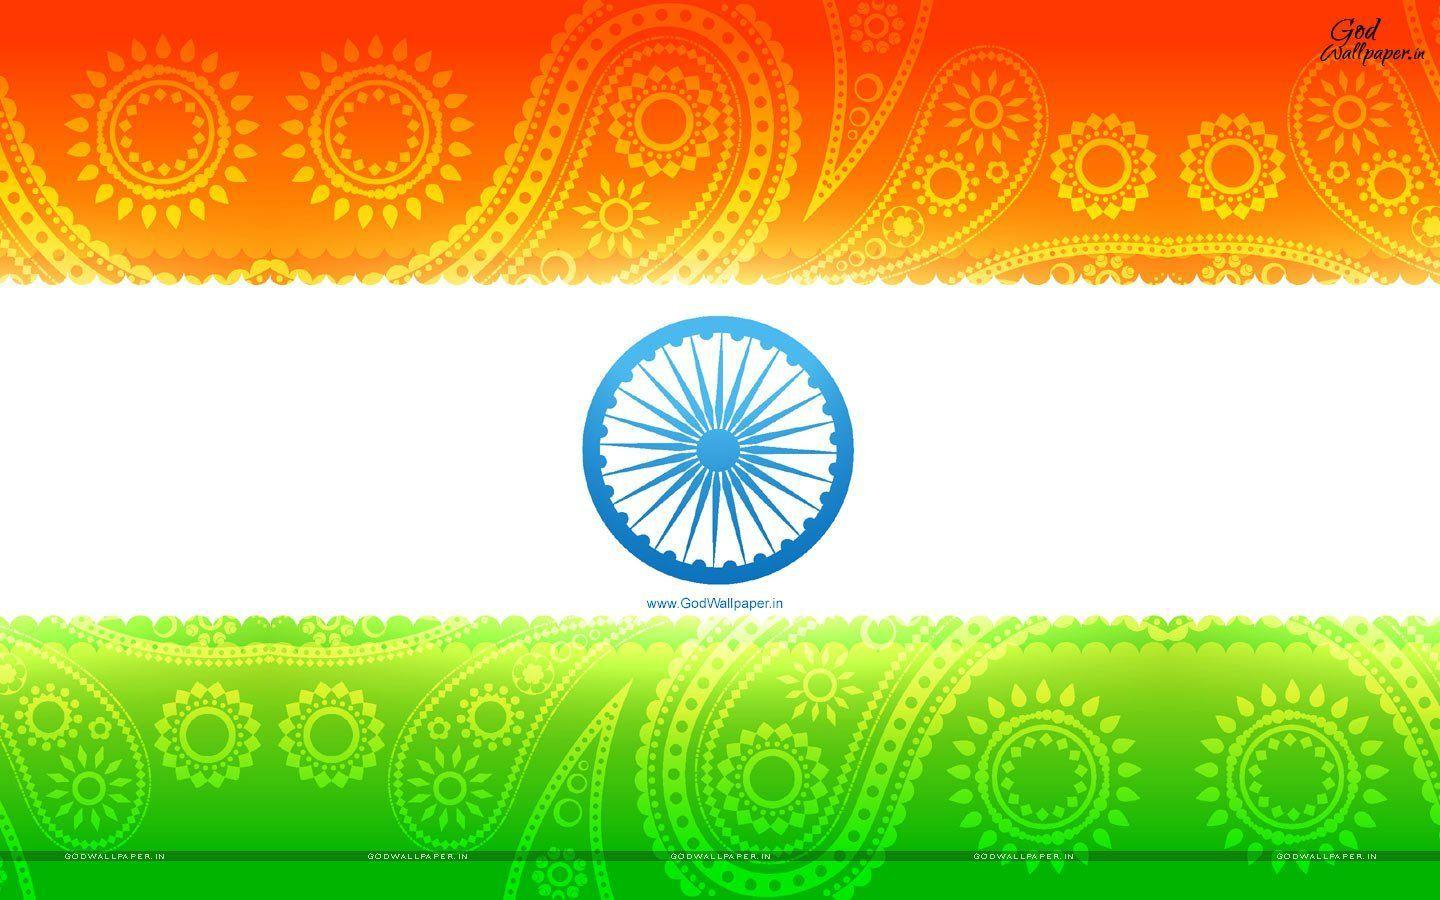 Indian Flag Wallpapers 3 HD Wallpapers 1440x900 HD Wallpapers